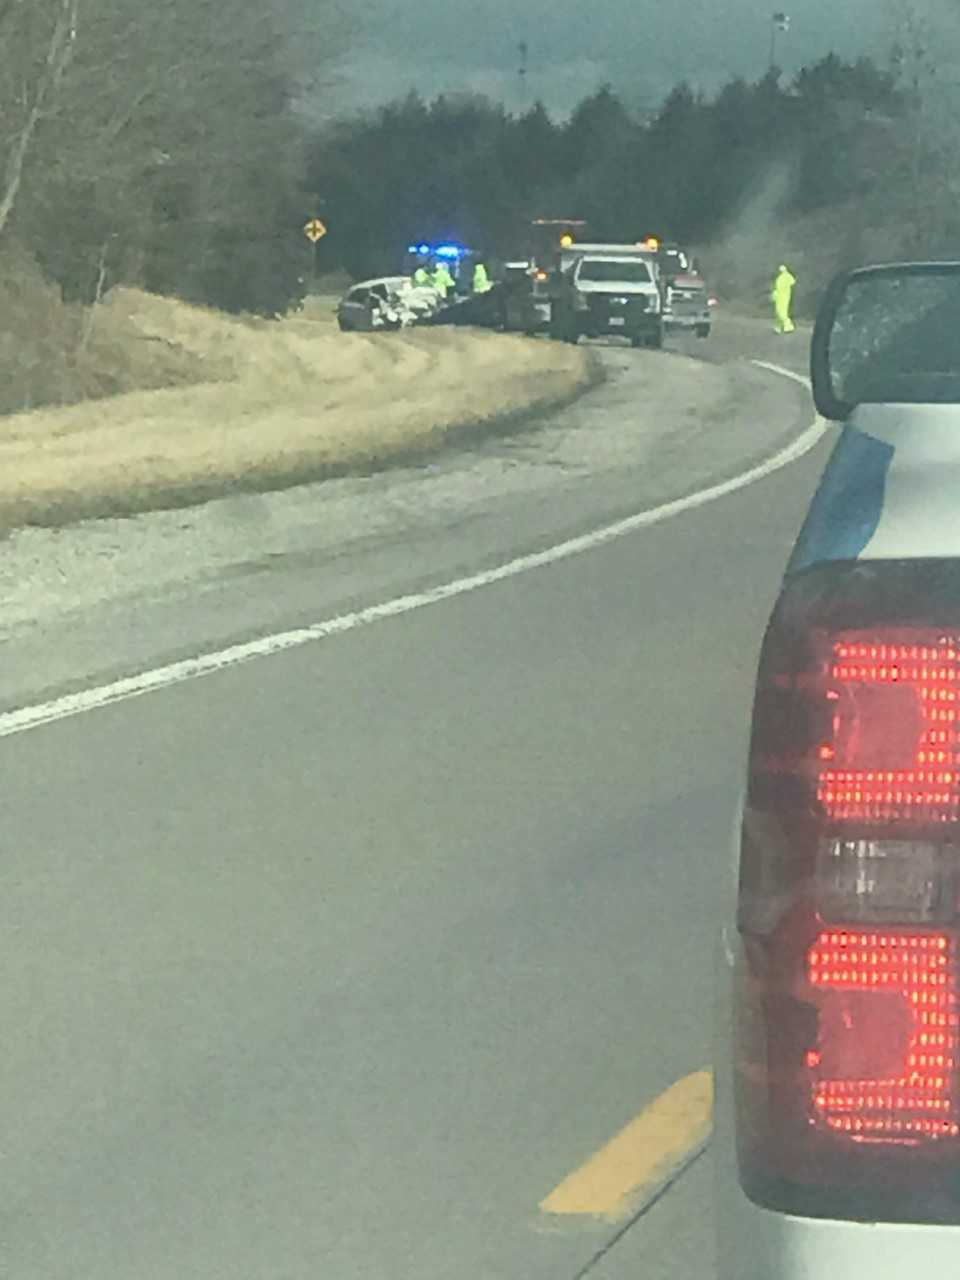 UPDATE–MSHP confirms serious accident just west of Moberly on US-24